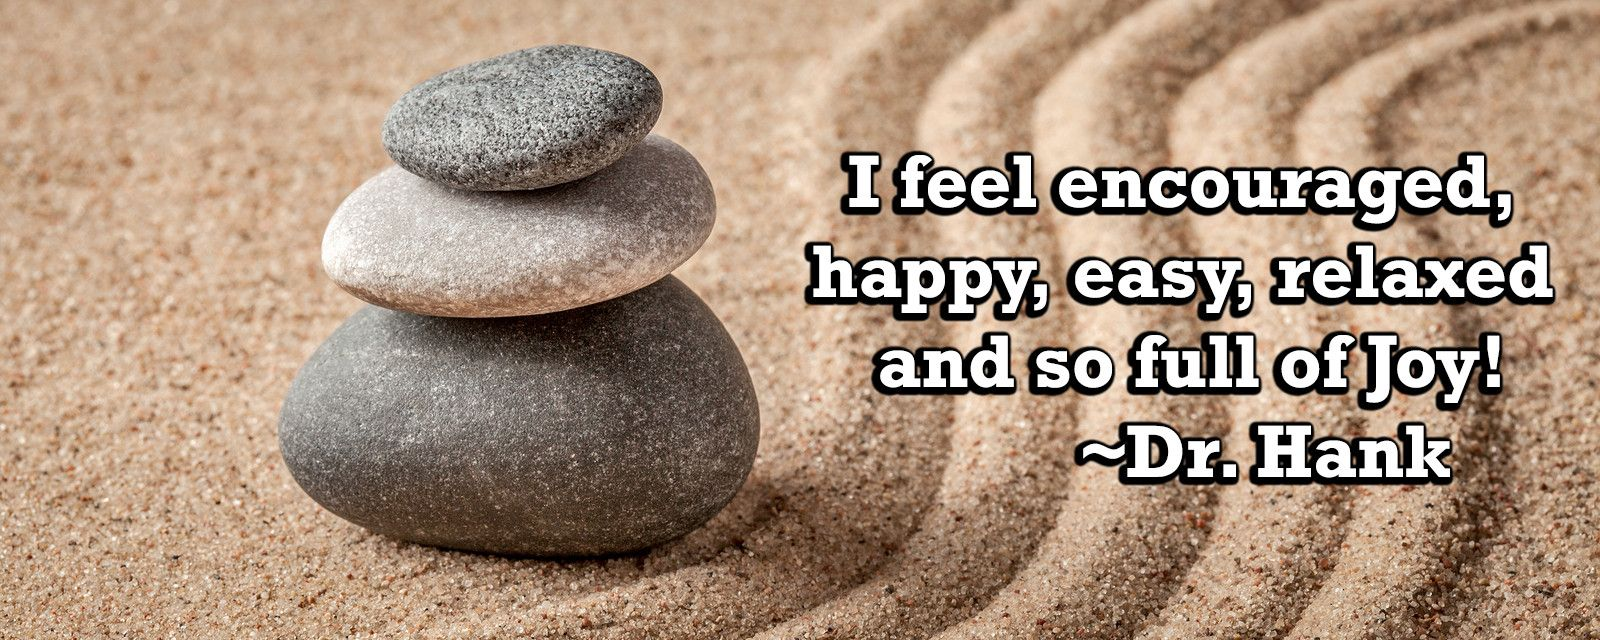 I feel encouraged,happy, easy, relaxed, and so full of joy!  Zen Inspiration Inspirational quotes qotd happiness positivity positive thinking positive vibes